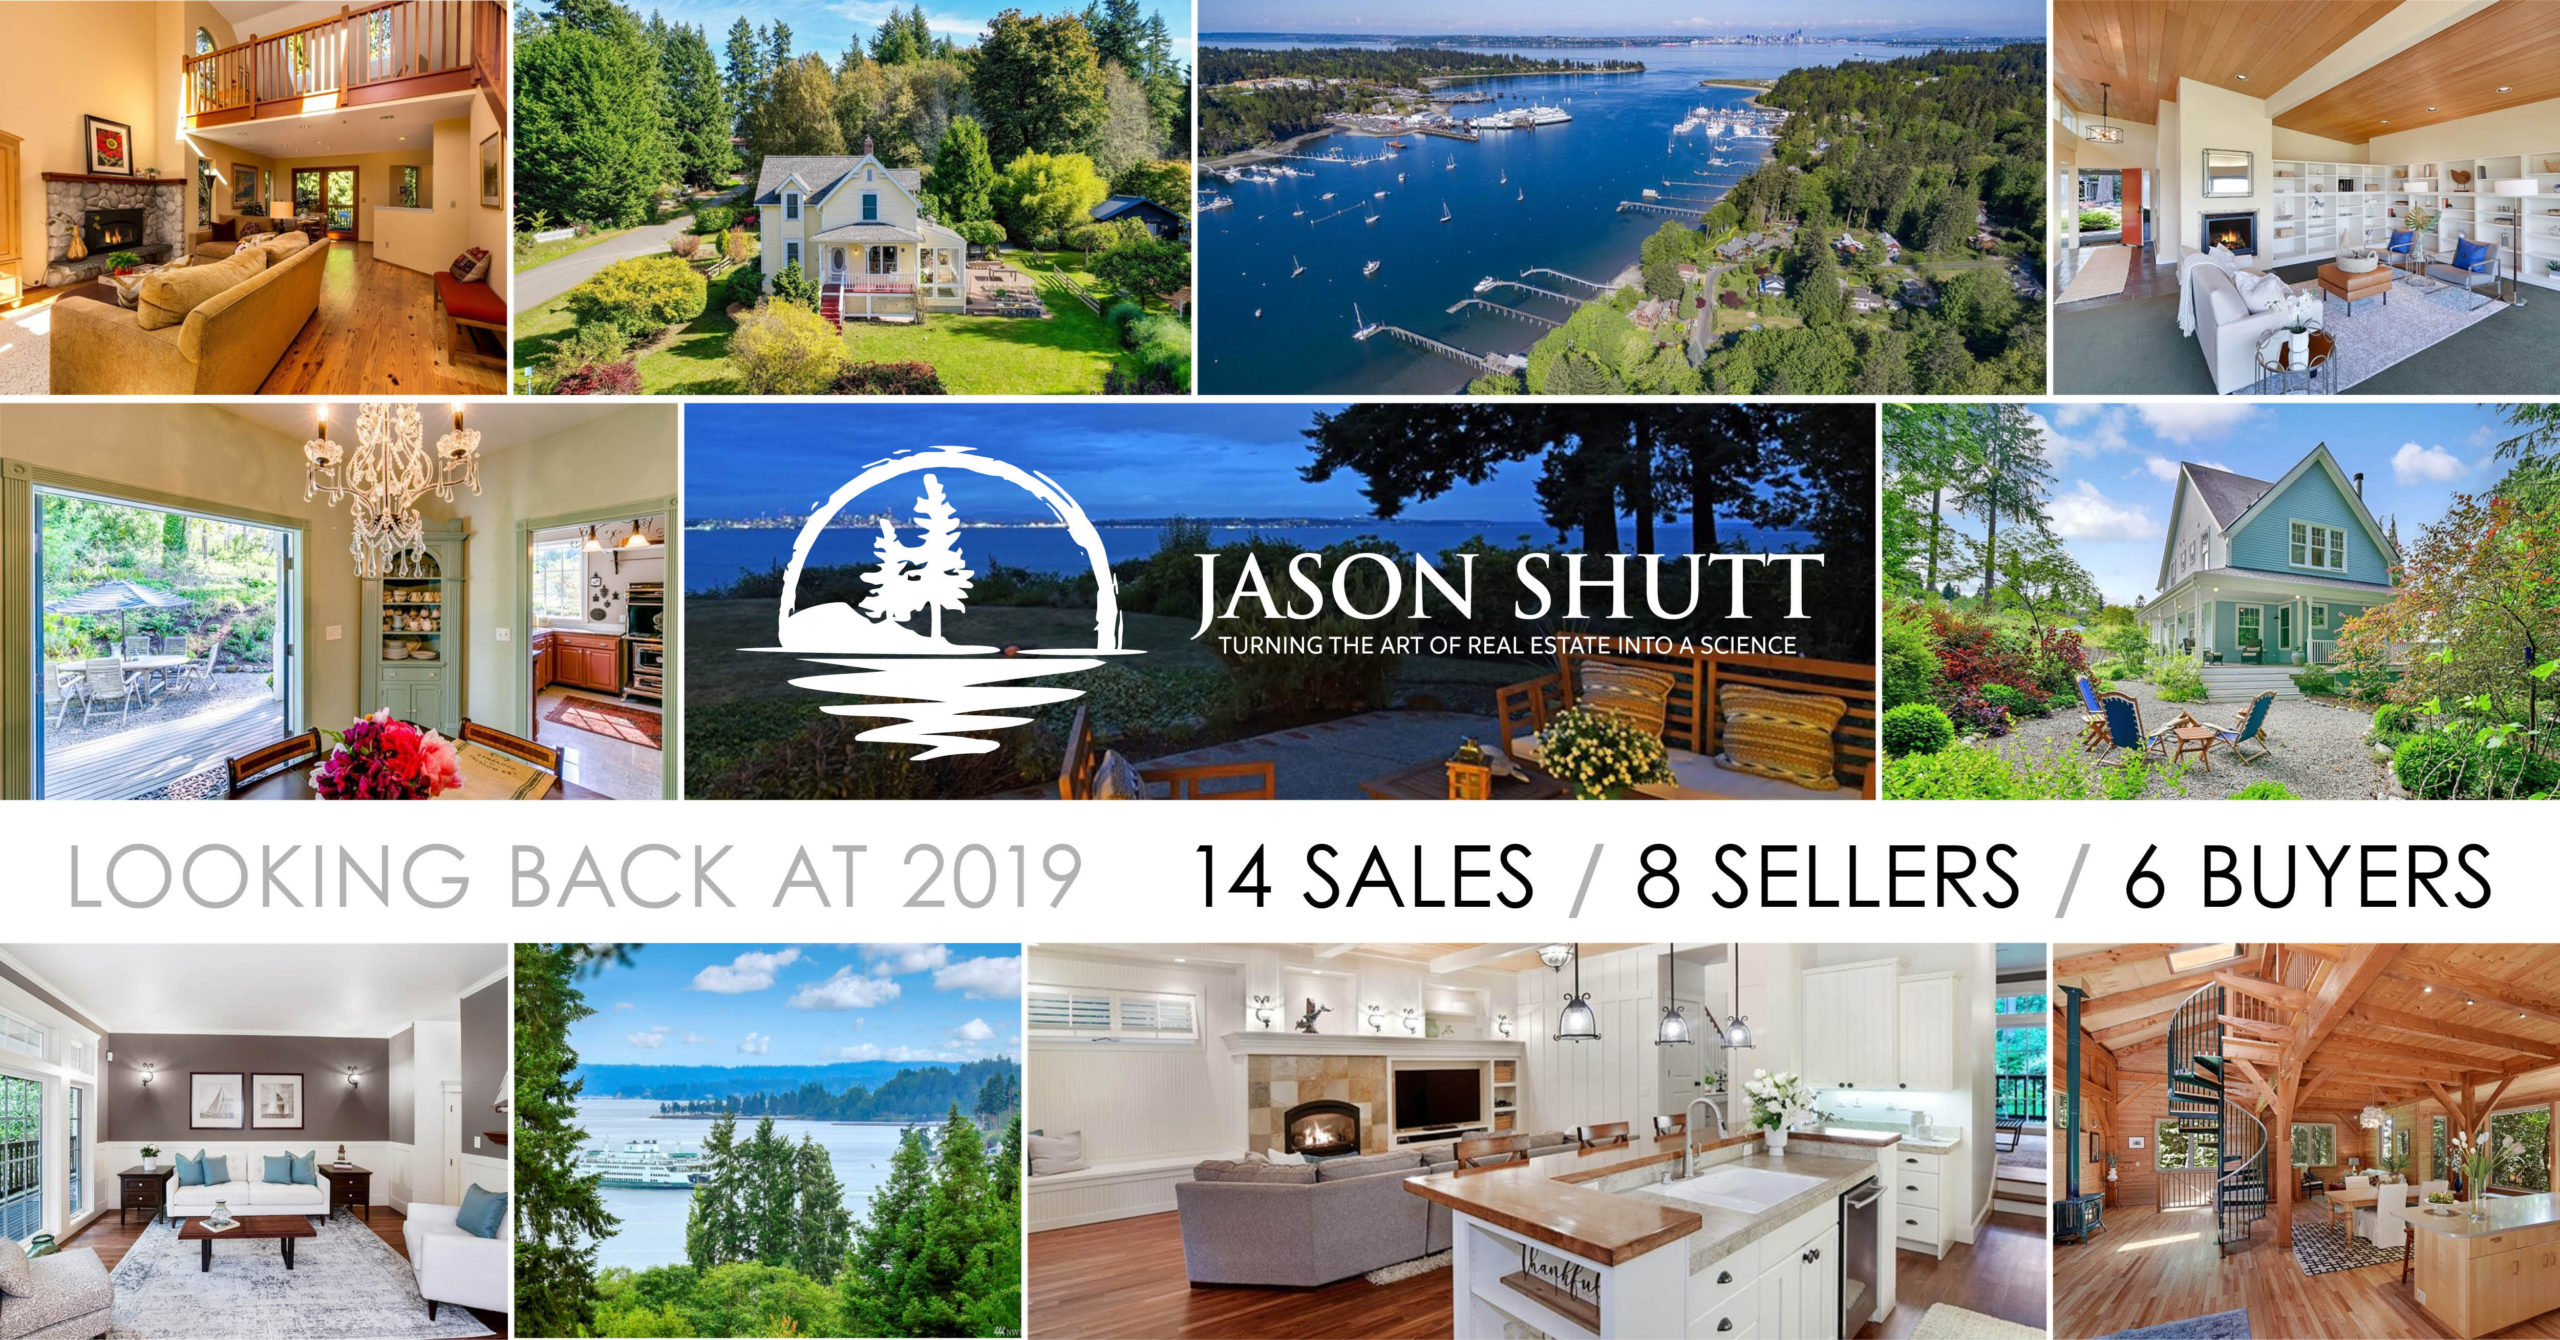 bainbridge island real estate agent market report 2019 year in review